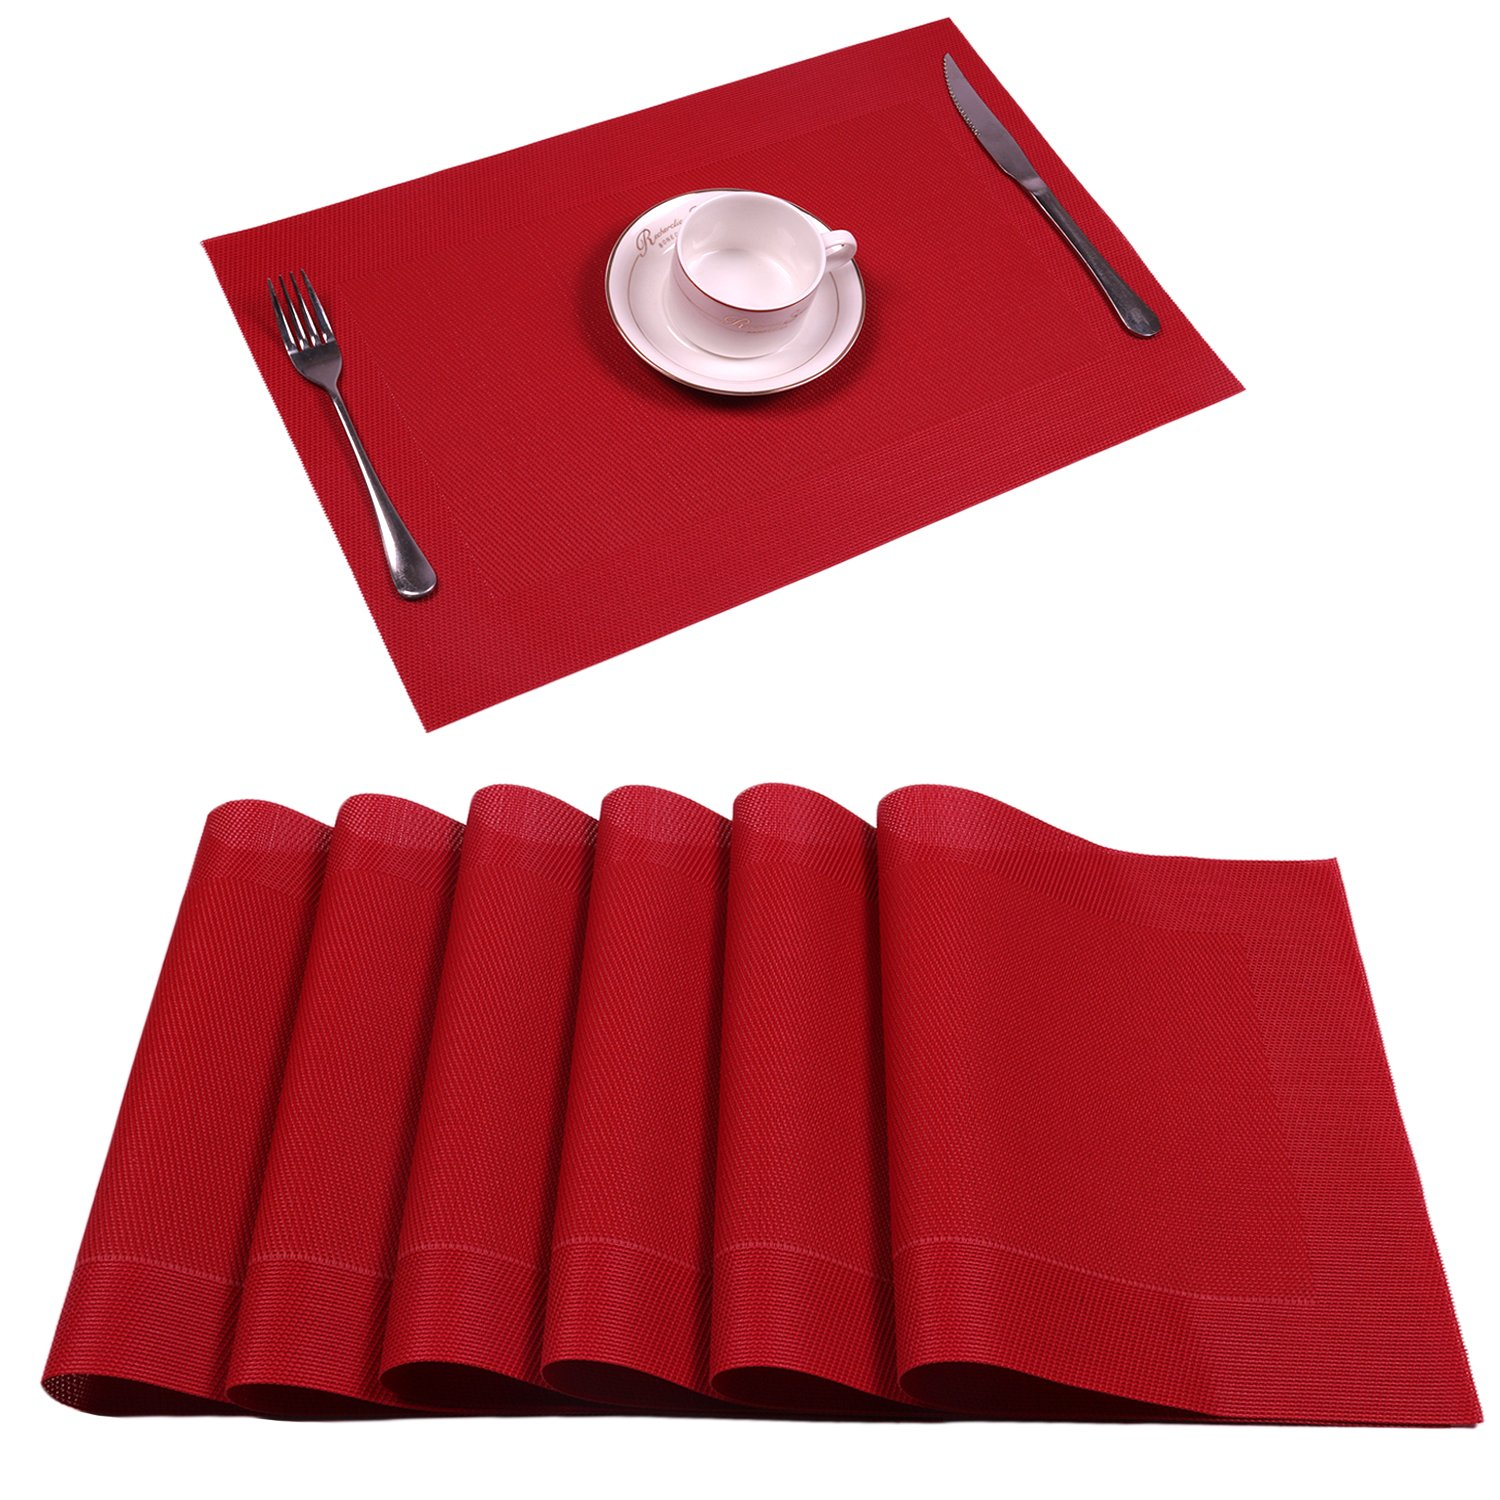 Placemat,U'Artlines Crossweave Woven Vinyl Non-slip Insulation Placemat Washable Table Mats Set (6pcs placemats, DK Red)